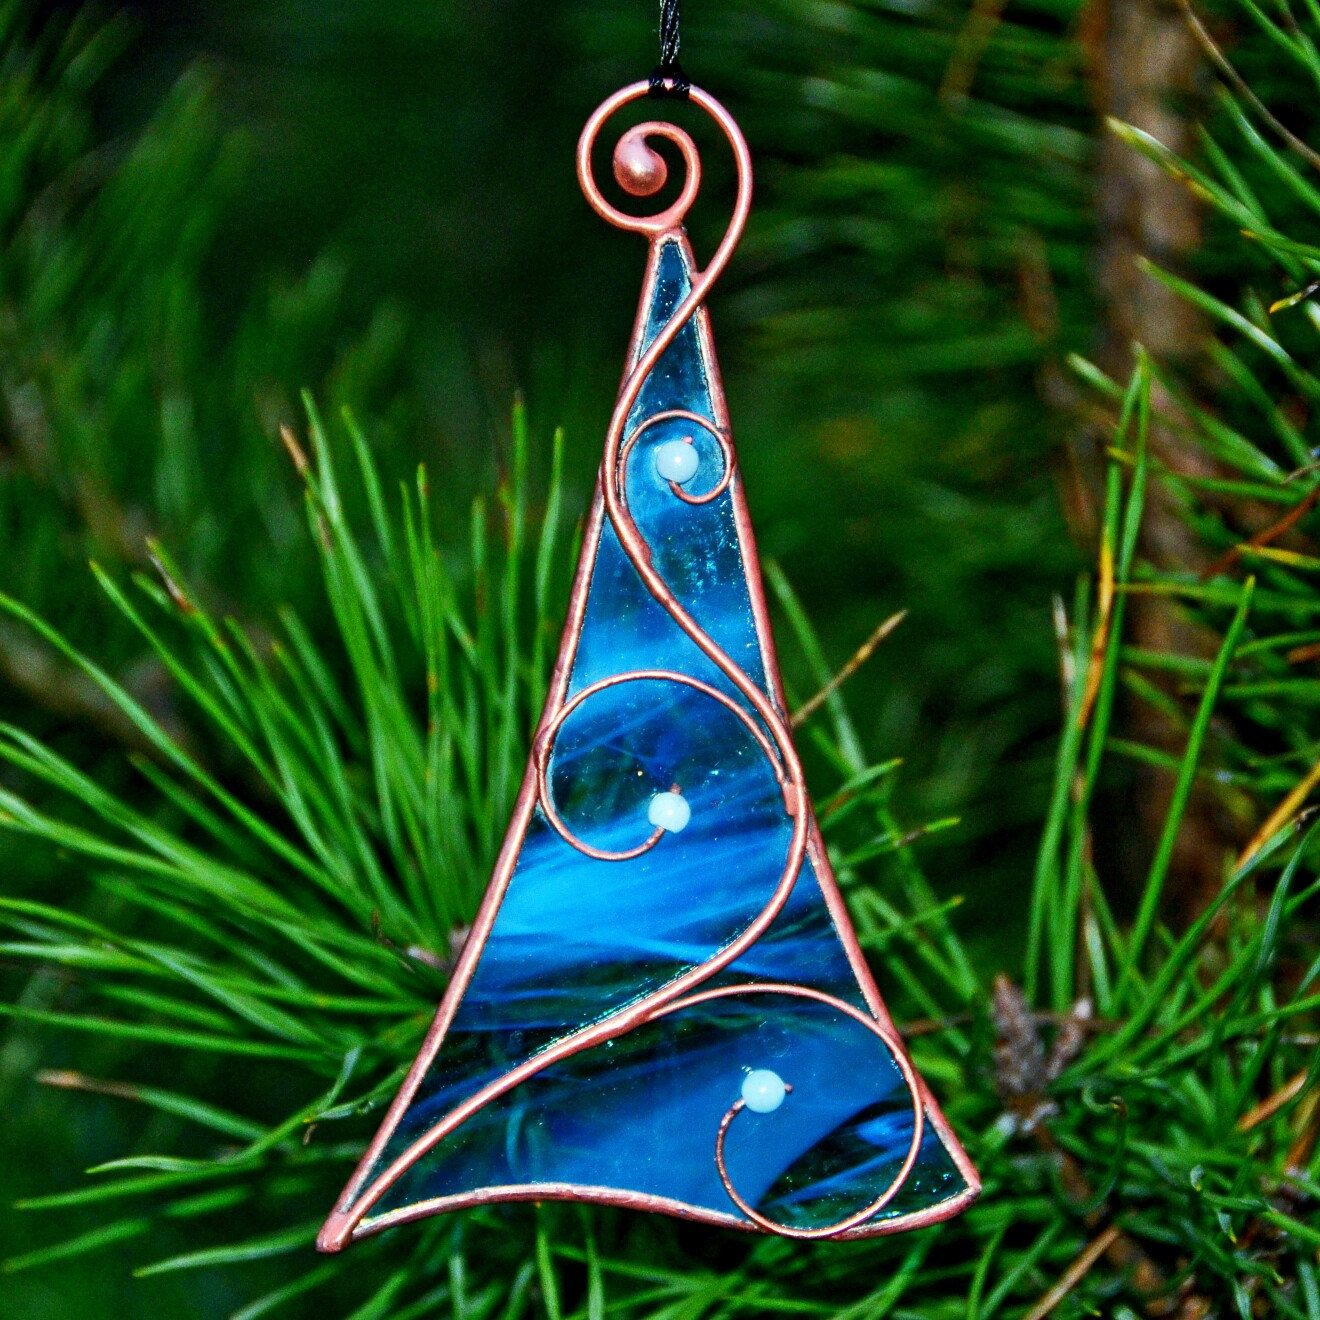 Stained Glass Christmas Ornaments Stained Glass Christmas Stained Glass Ornaments Glass Christmas Tree